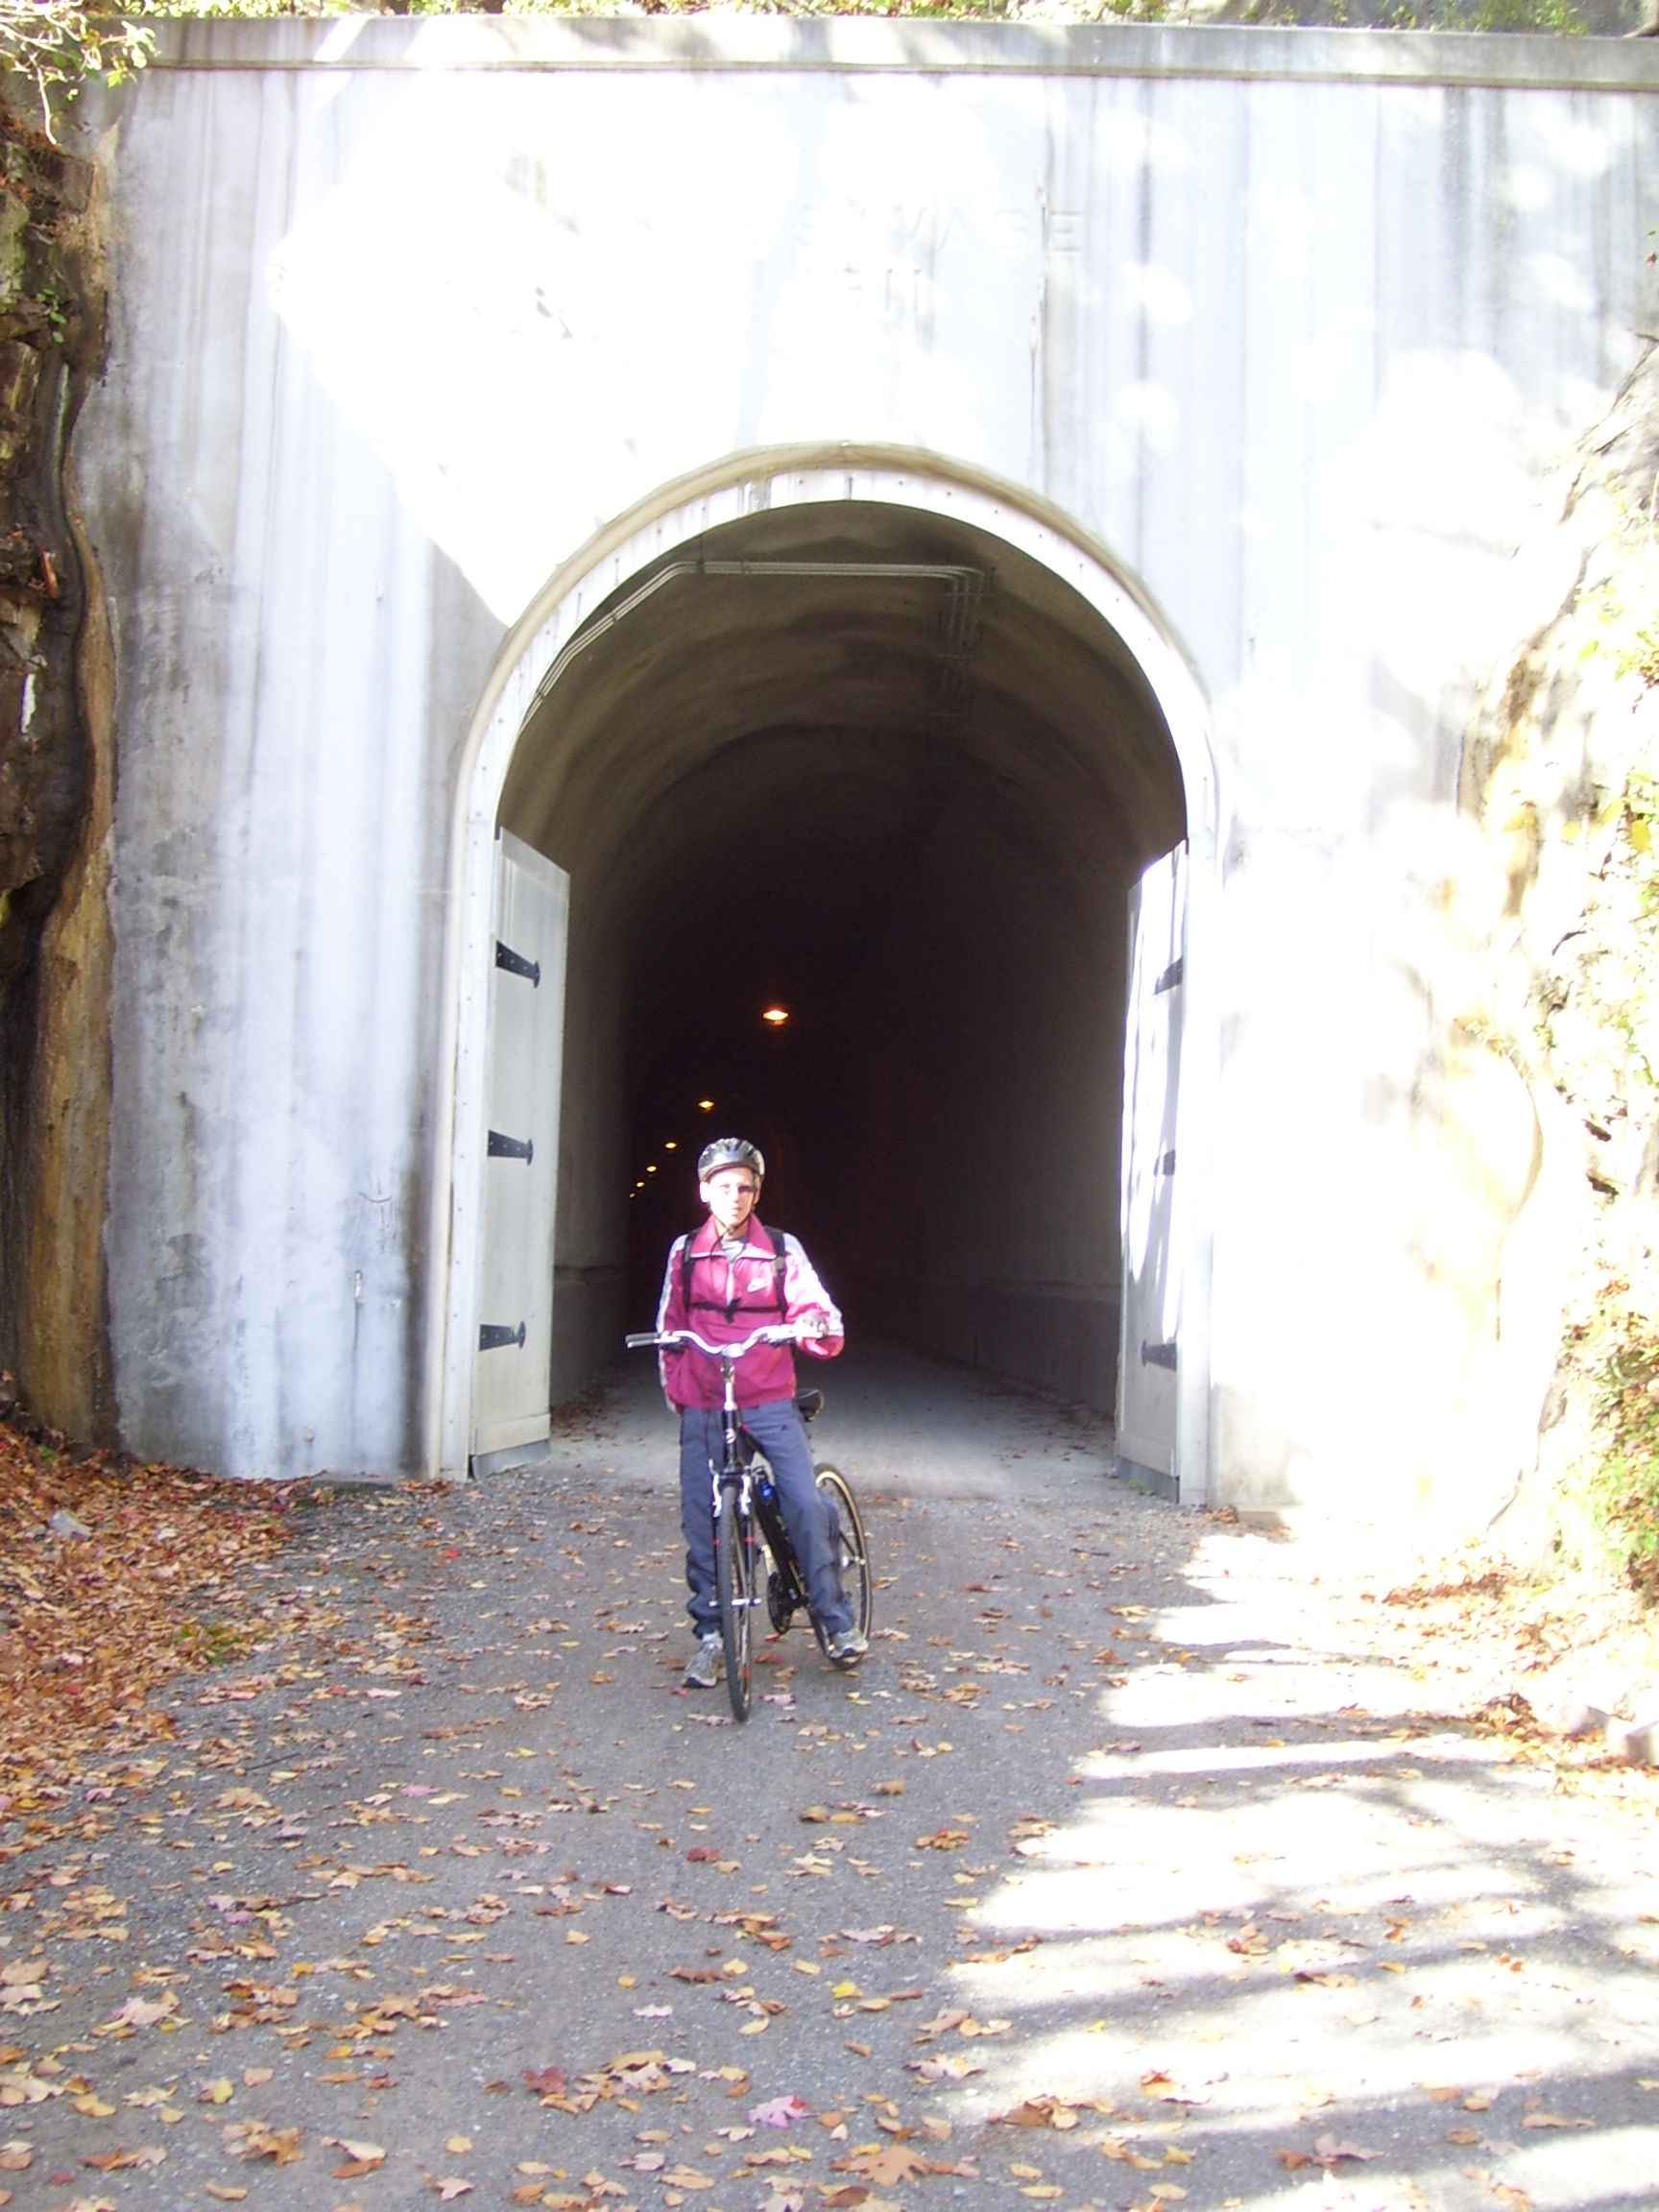 GAP - Great Allegheny Passage - Big Savage Tunnel - The doors are closed after Thanksgiving & GAP - Great Allegheny Passage - Big Savage Tunnel - The doors are ...